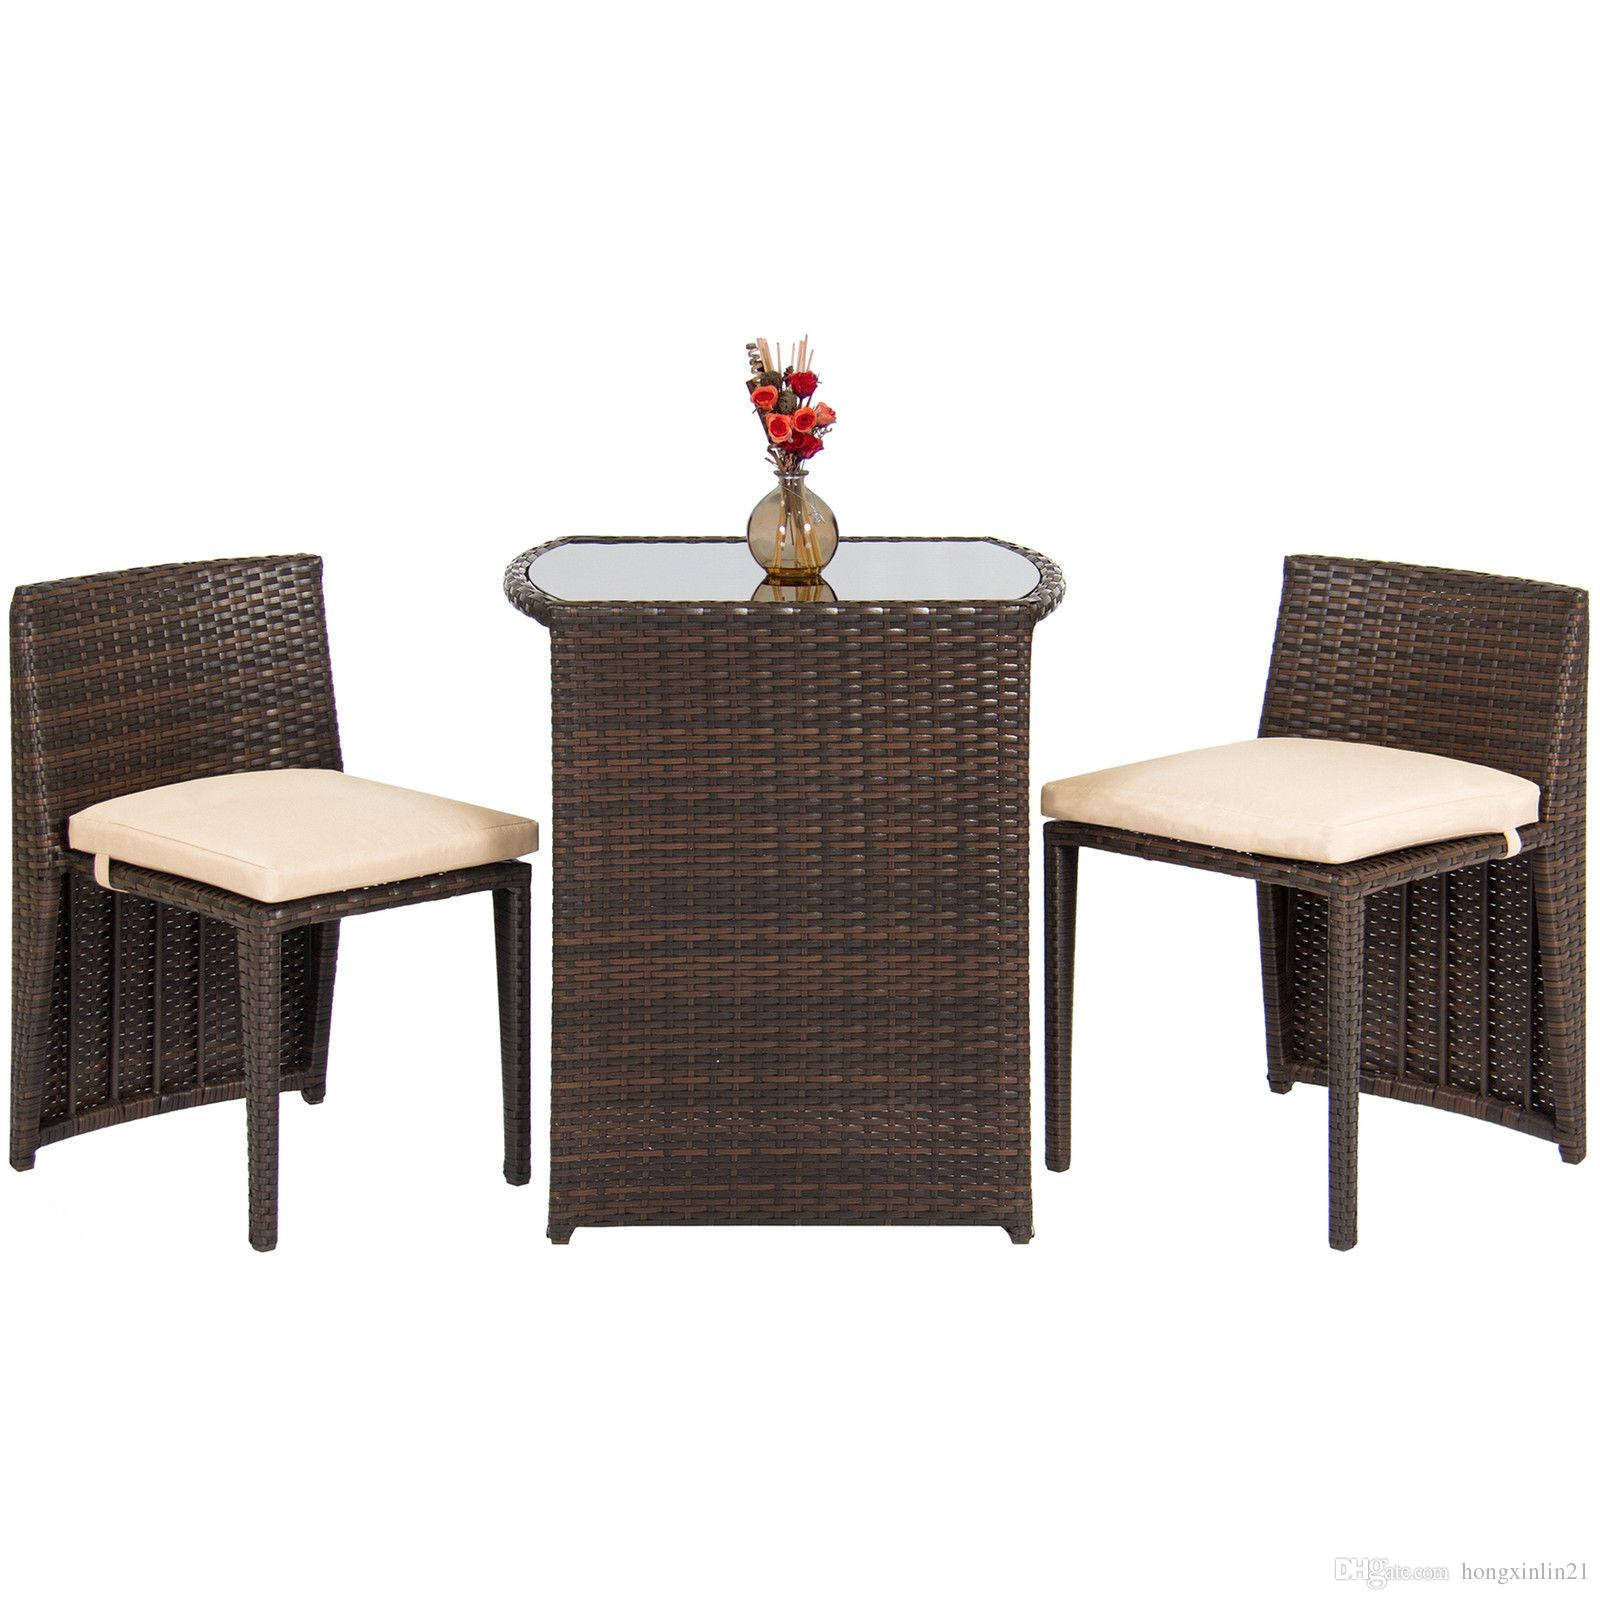 2019 outdoor patio furniture wicker bistro set glass top table 2 chairs brown from hongxinlin21 85 43 dhgate com